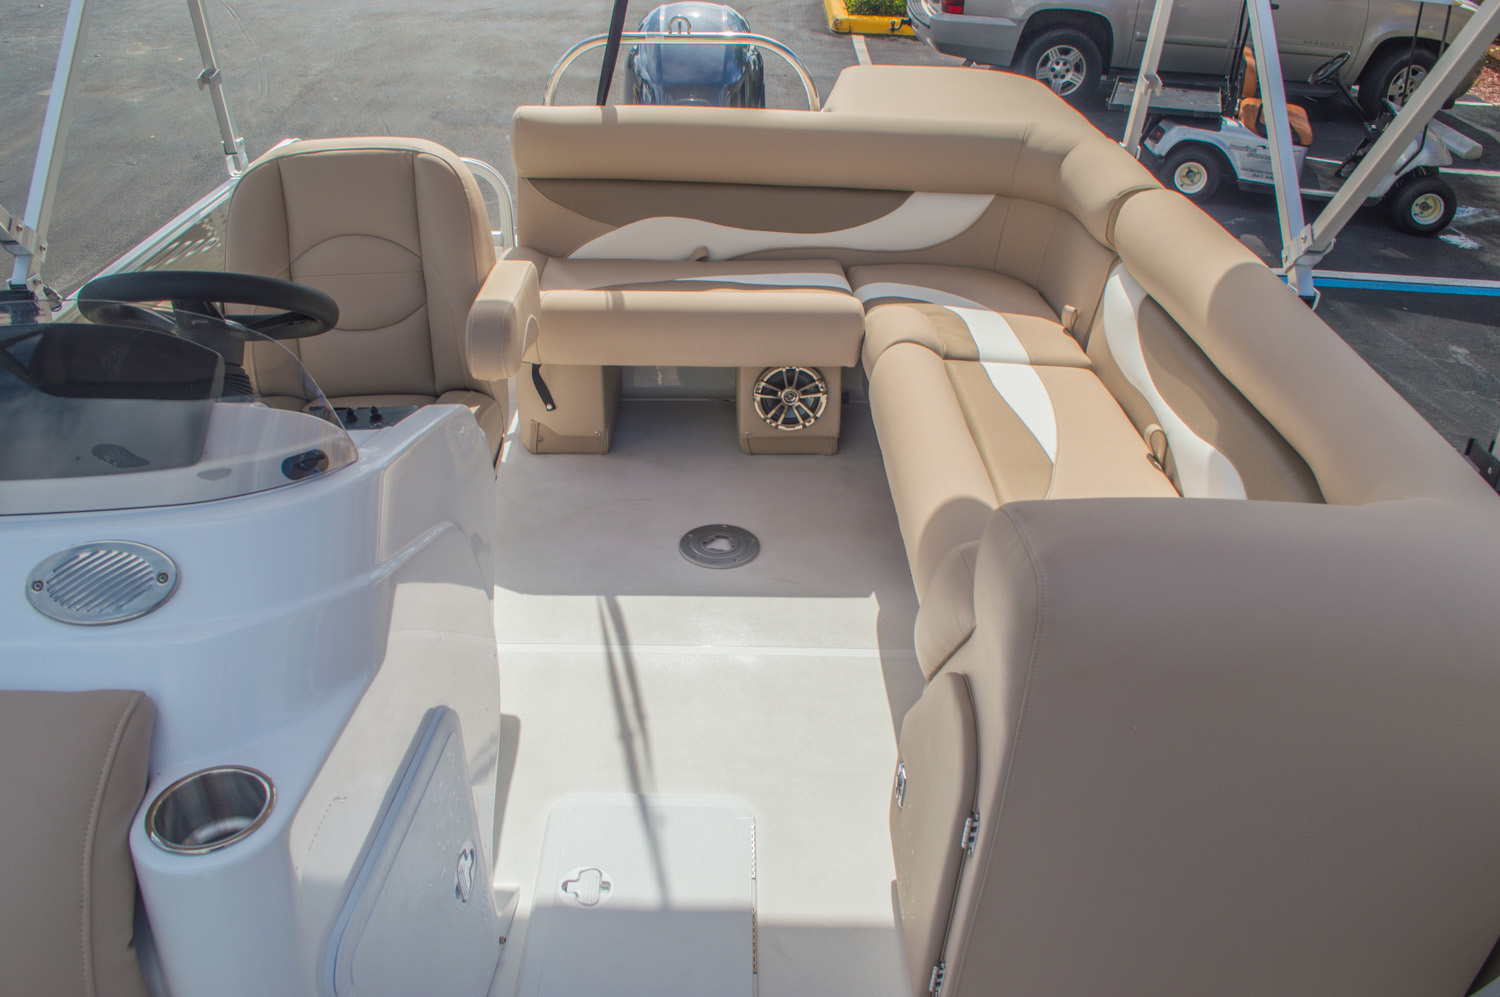 Thumbnail 17 for New 2016 Hurricane FunDeck FD 226 OB boat for sale in Vero Beach, FL